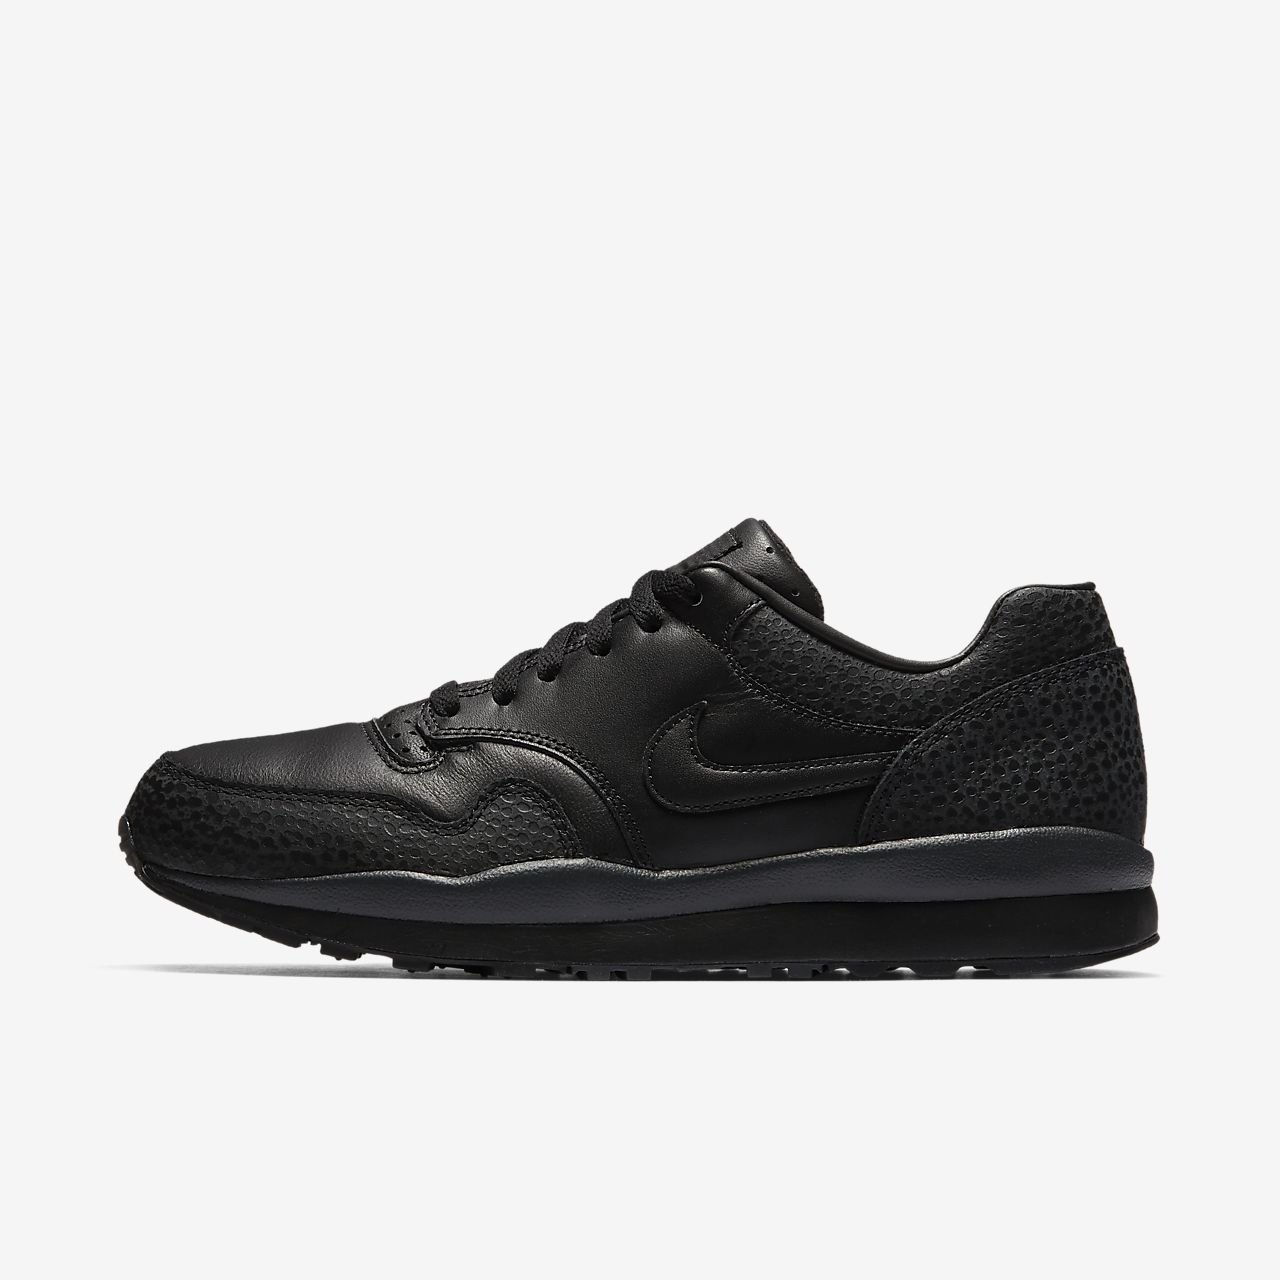 France Nike Quickstrike Noir Limited Editions Baskets Nike